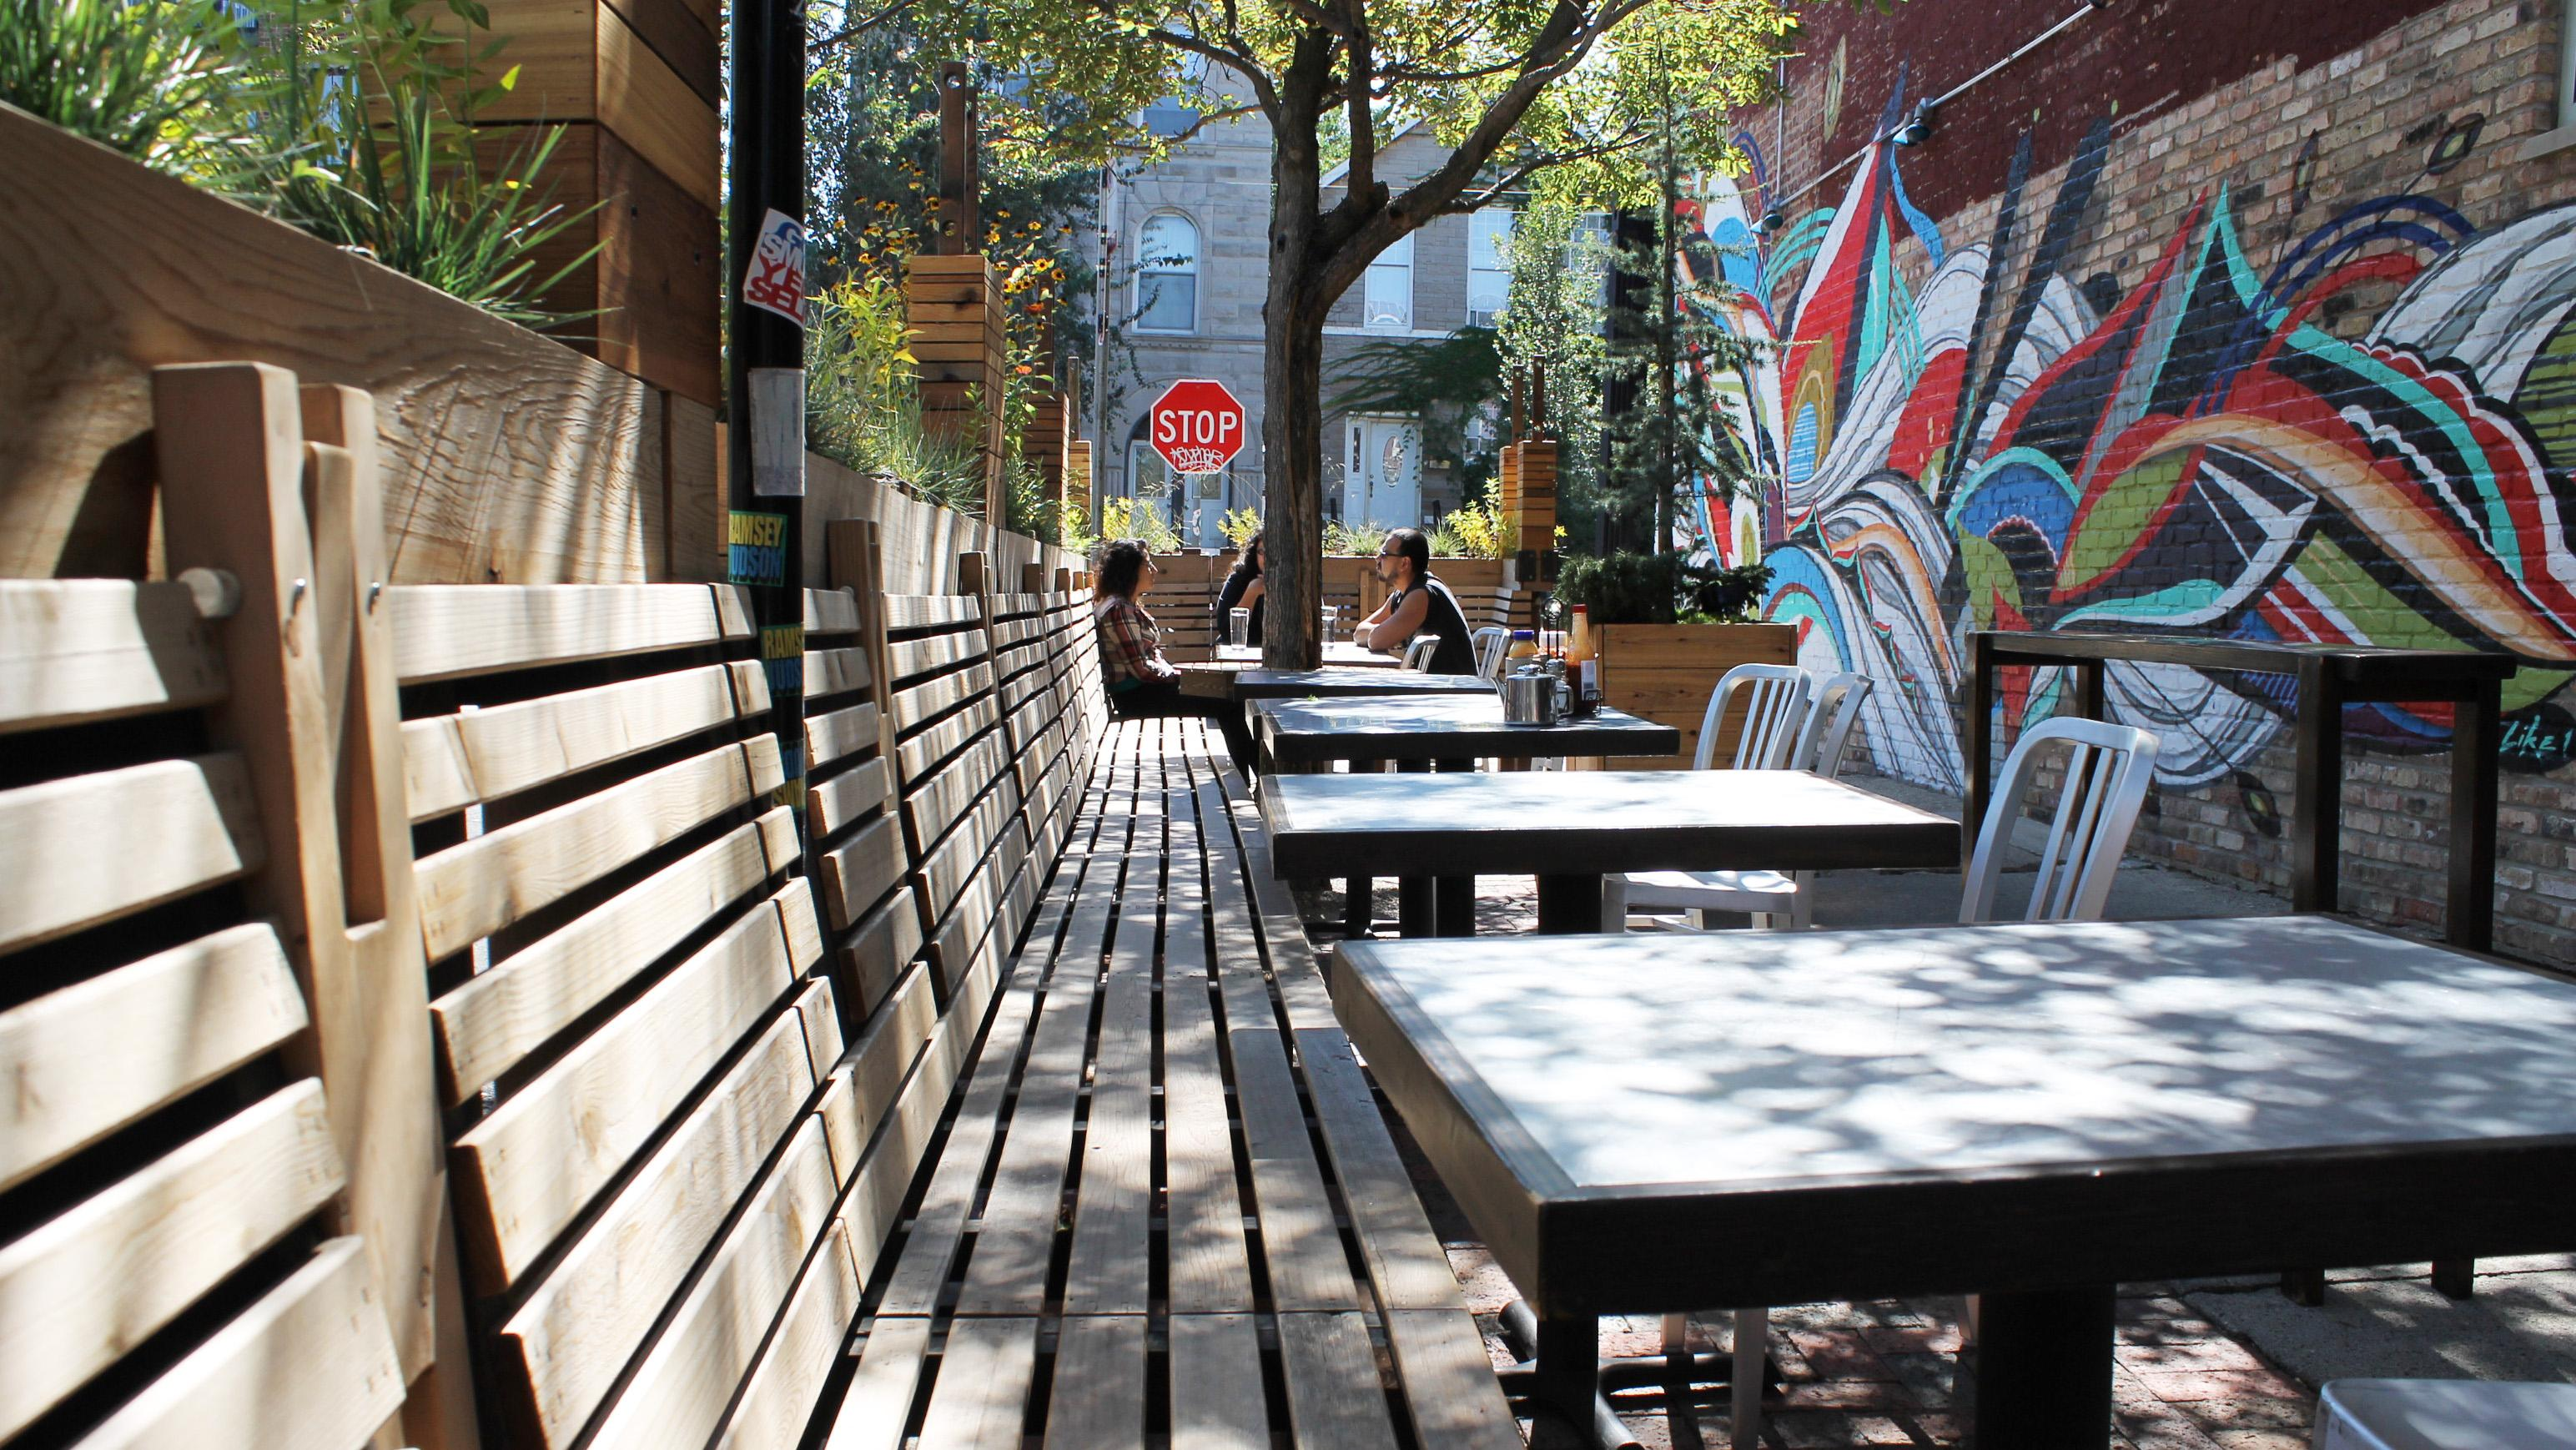 The Patio At Simoneu0027s Bar In Pilsen. (Connie Ma / Flickr)